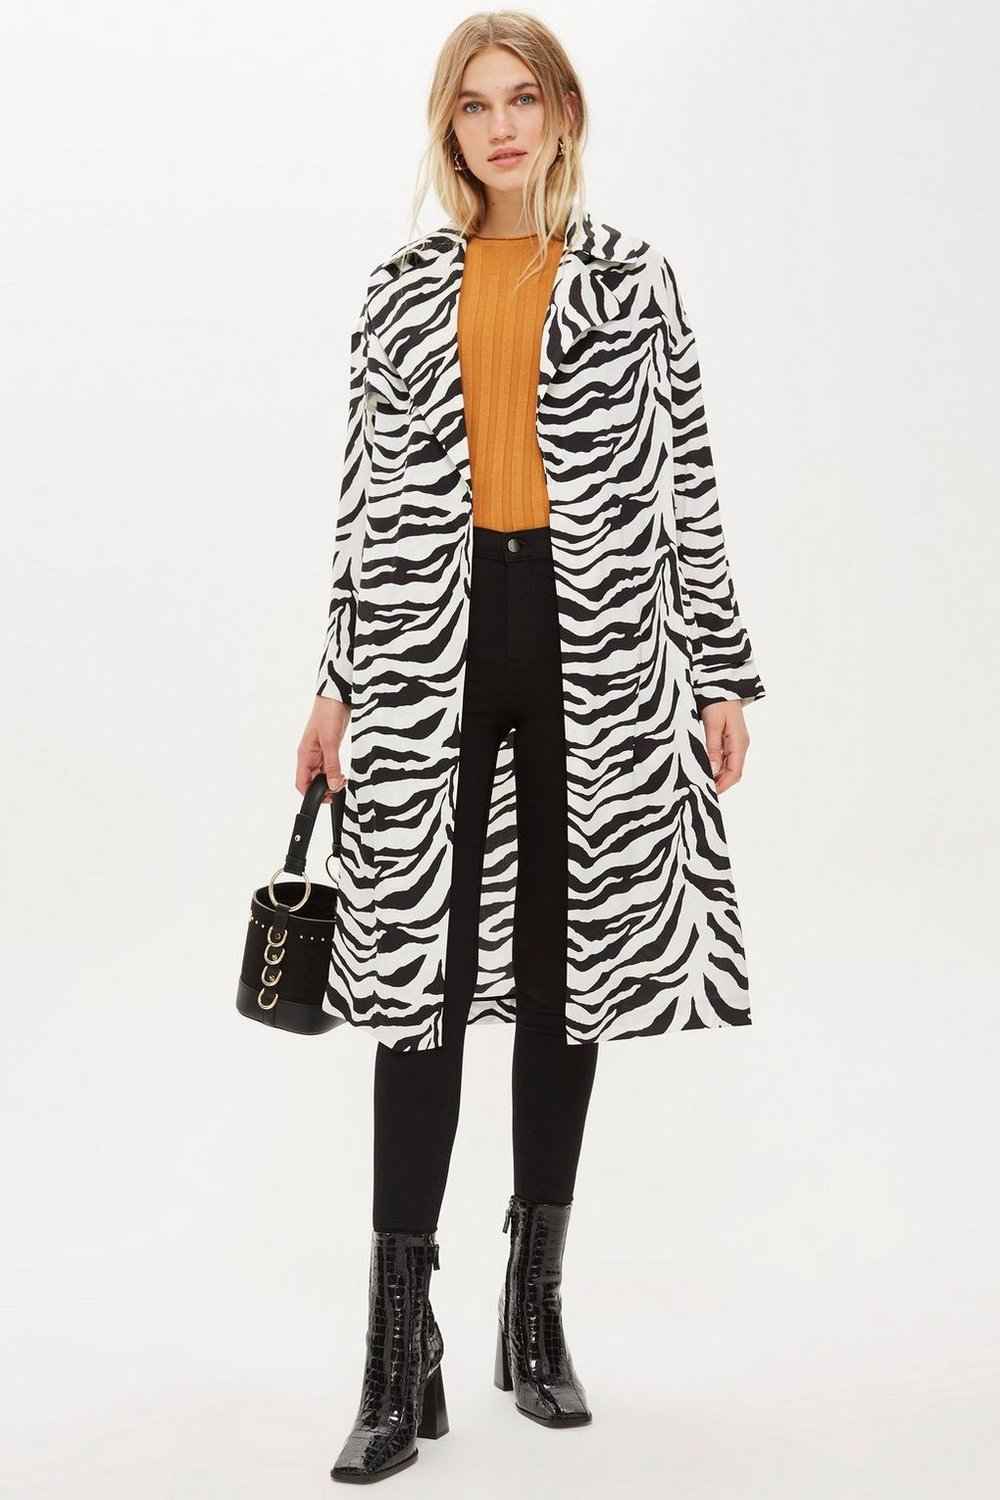 Zebra Print Duster Jacket - $110